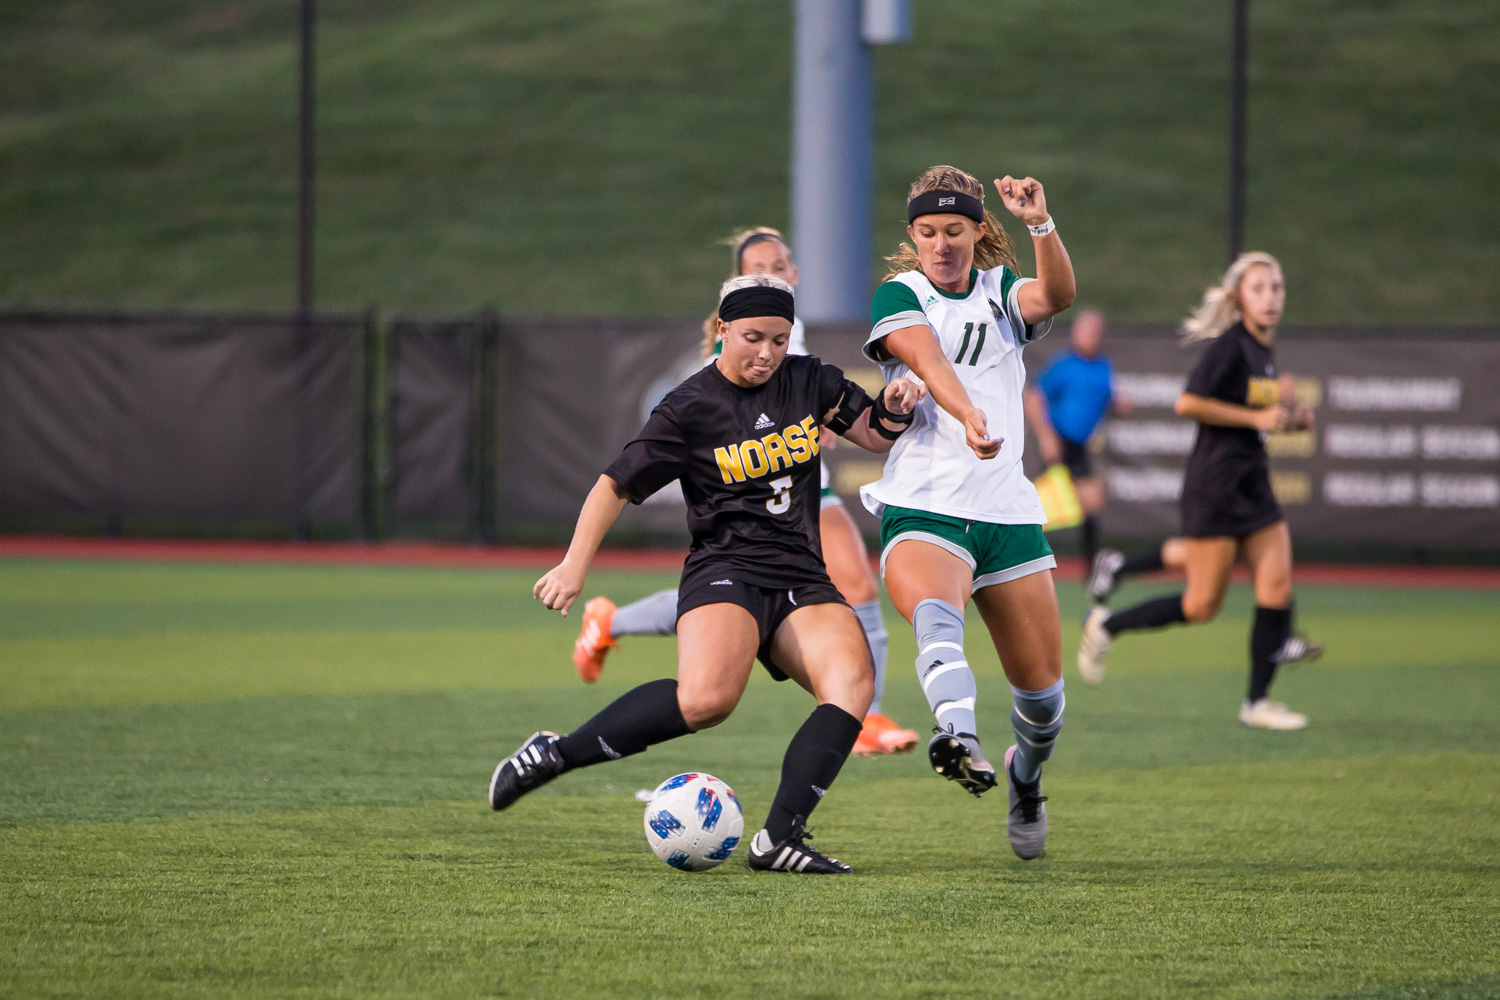 Ashleigh+Cronin+%285%29+fights+to+pass+a+ball+during+the+game+against+Ohio+University.+The+Norse+fell+1-0+to+the+Bobcats+on+Sunday+night.